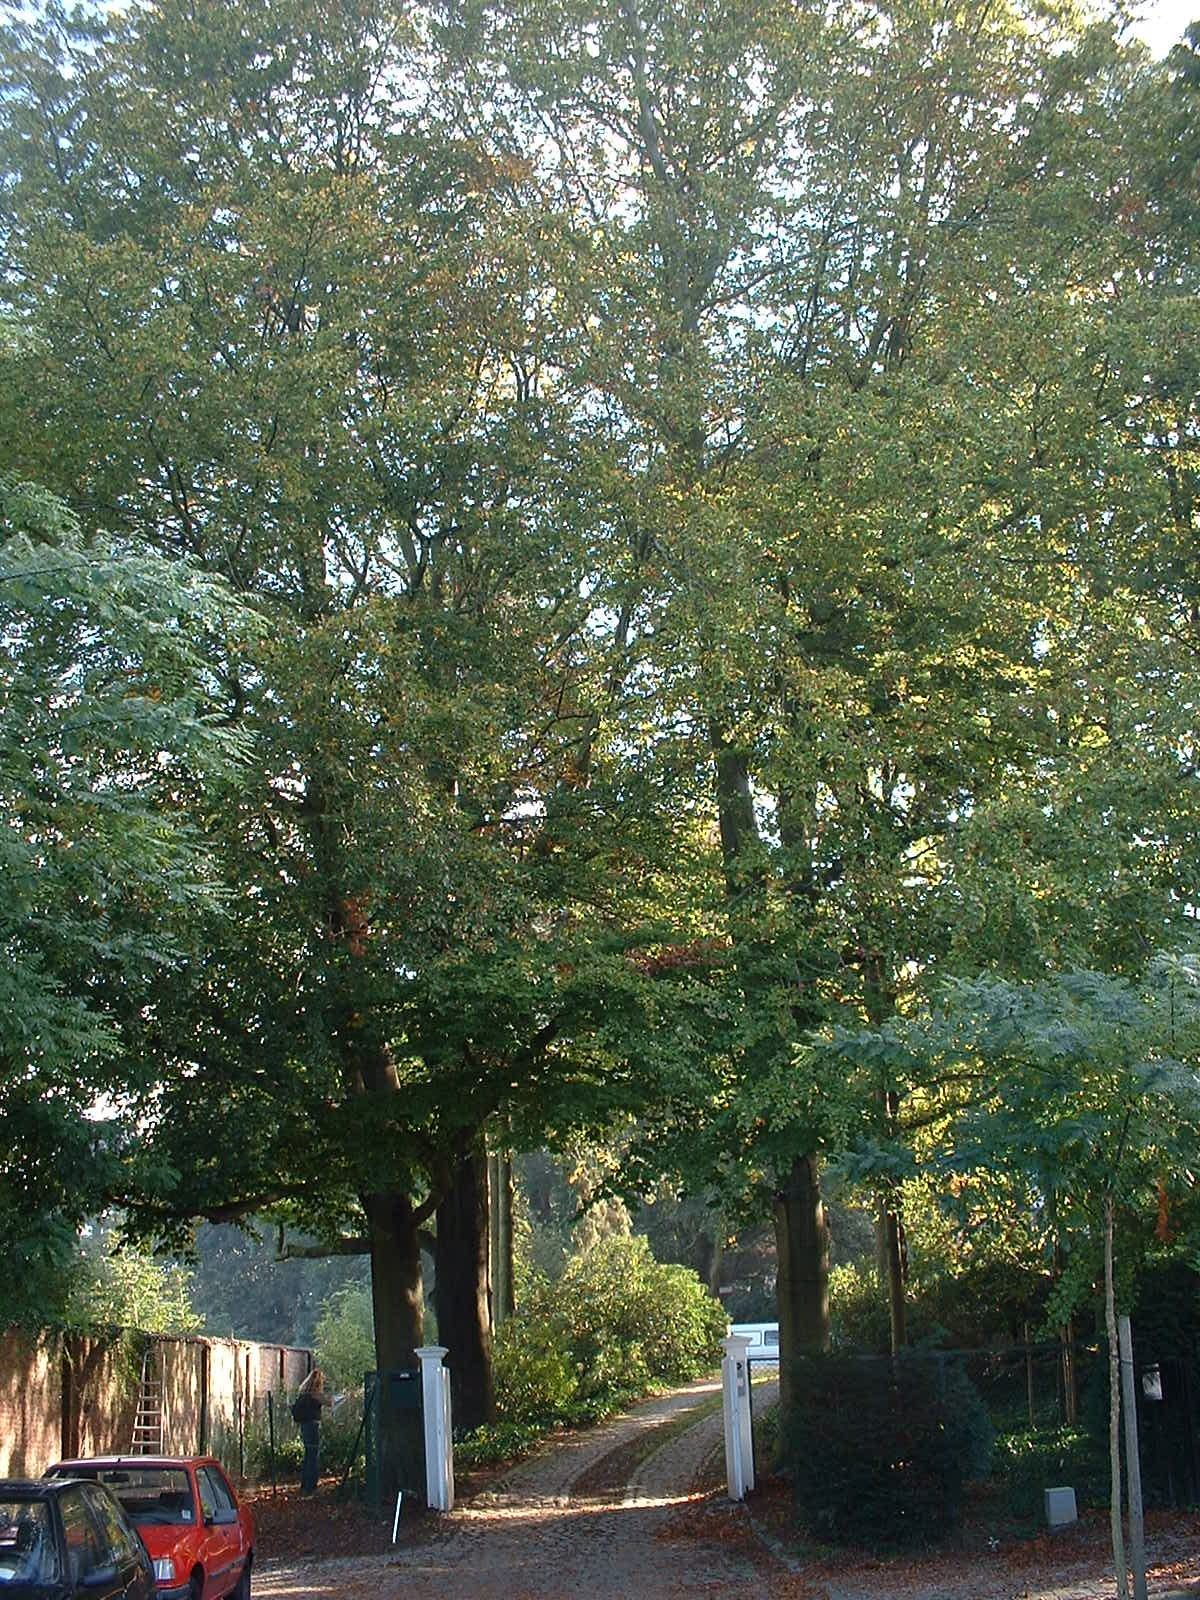 Hêtre d'Europe – Uccle, Avenue Juliette, 20 –  07 Octobre 2002